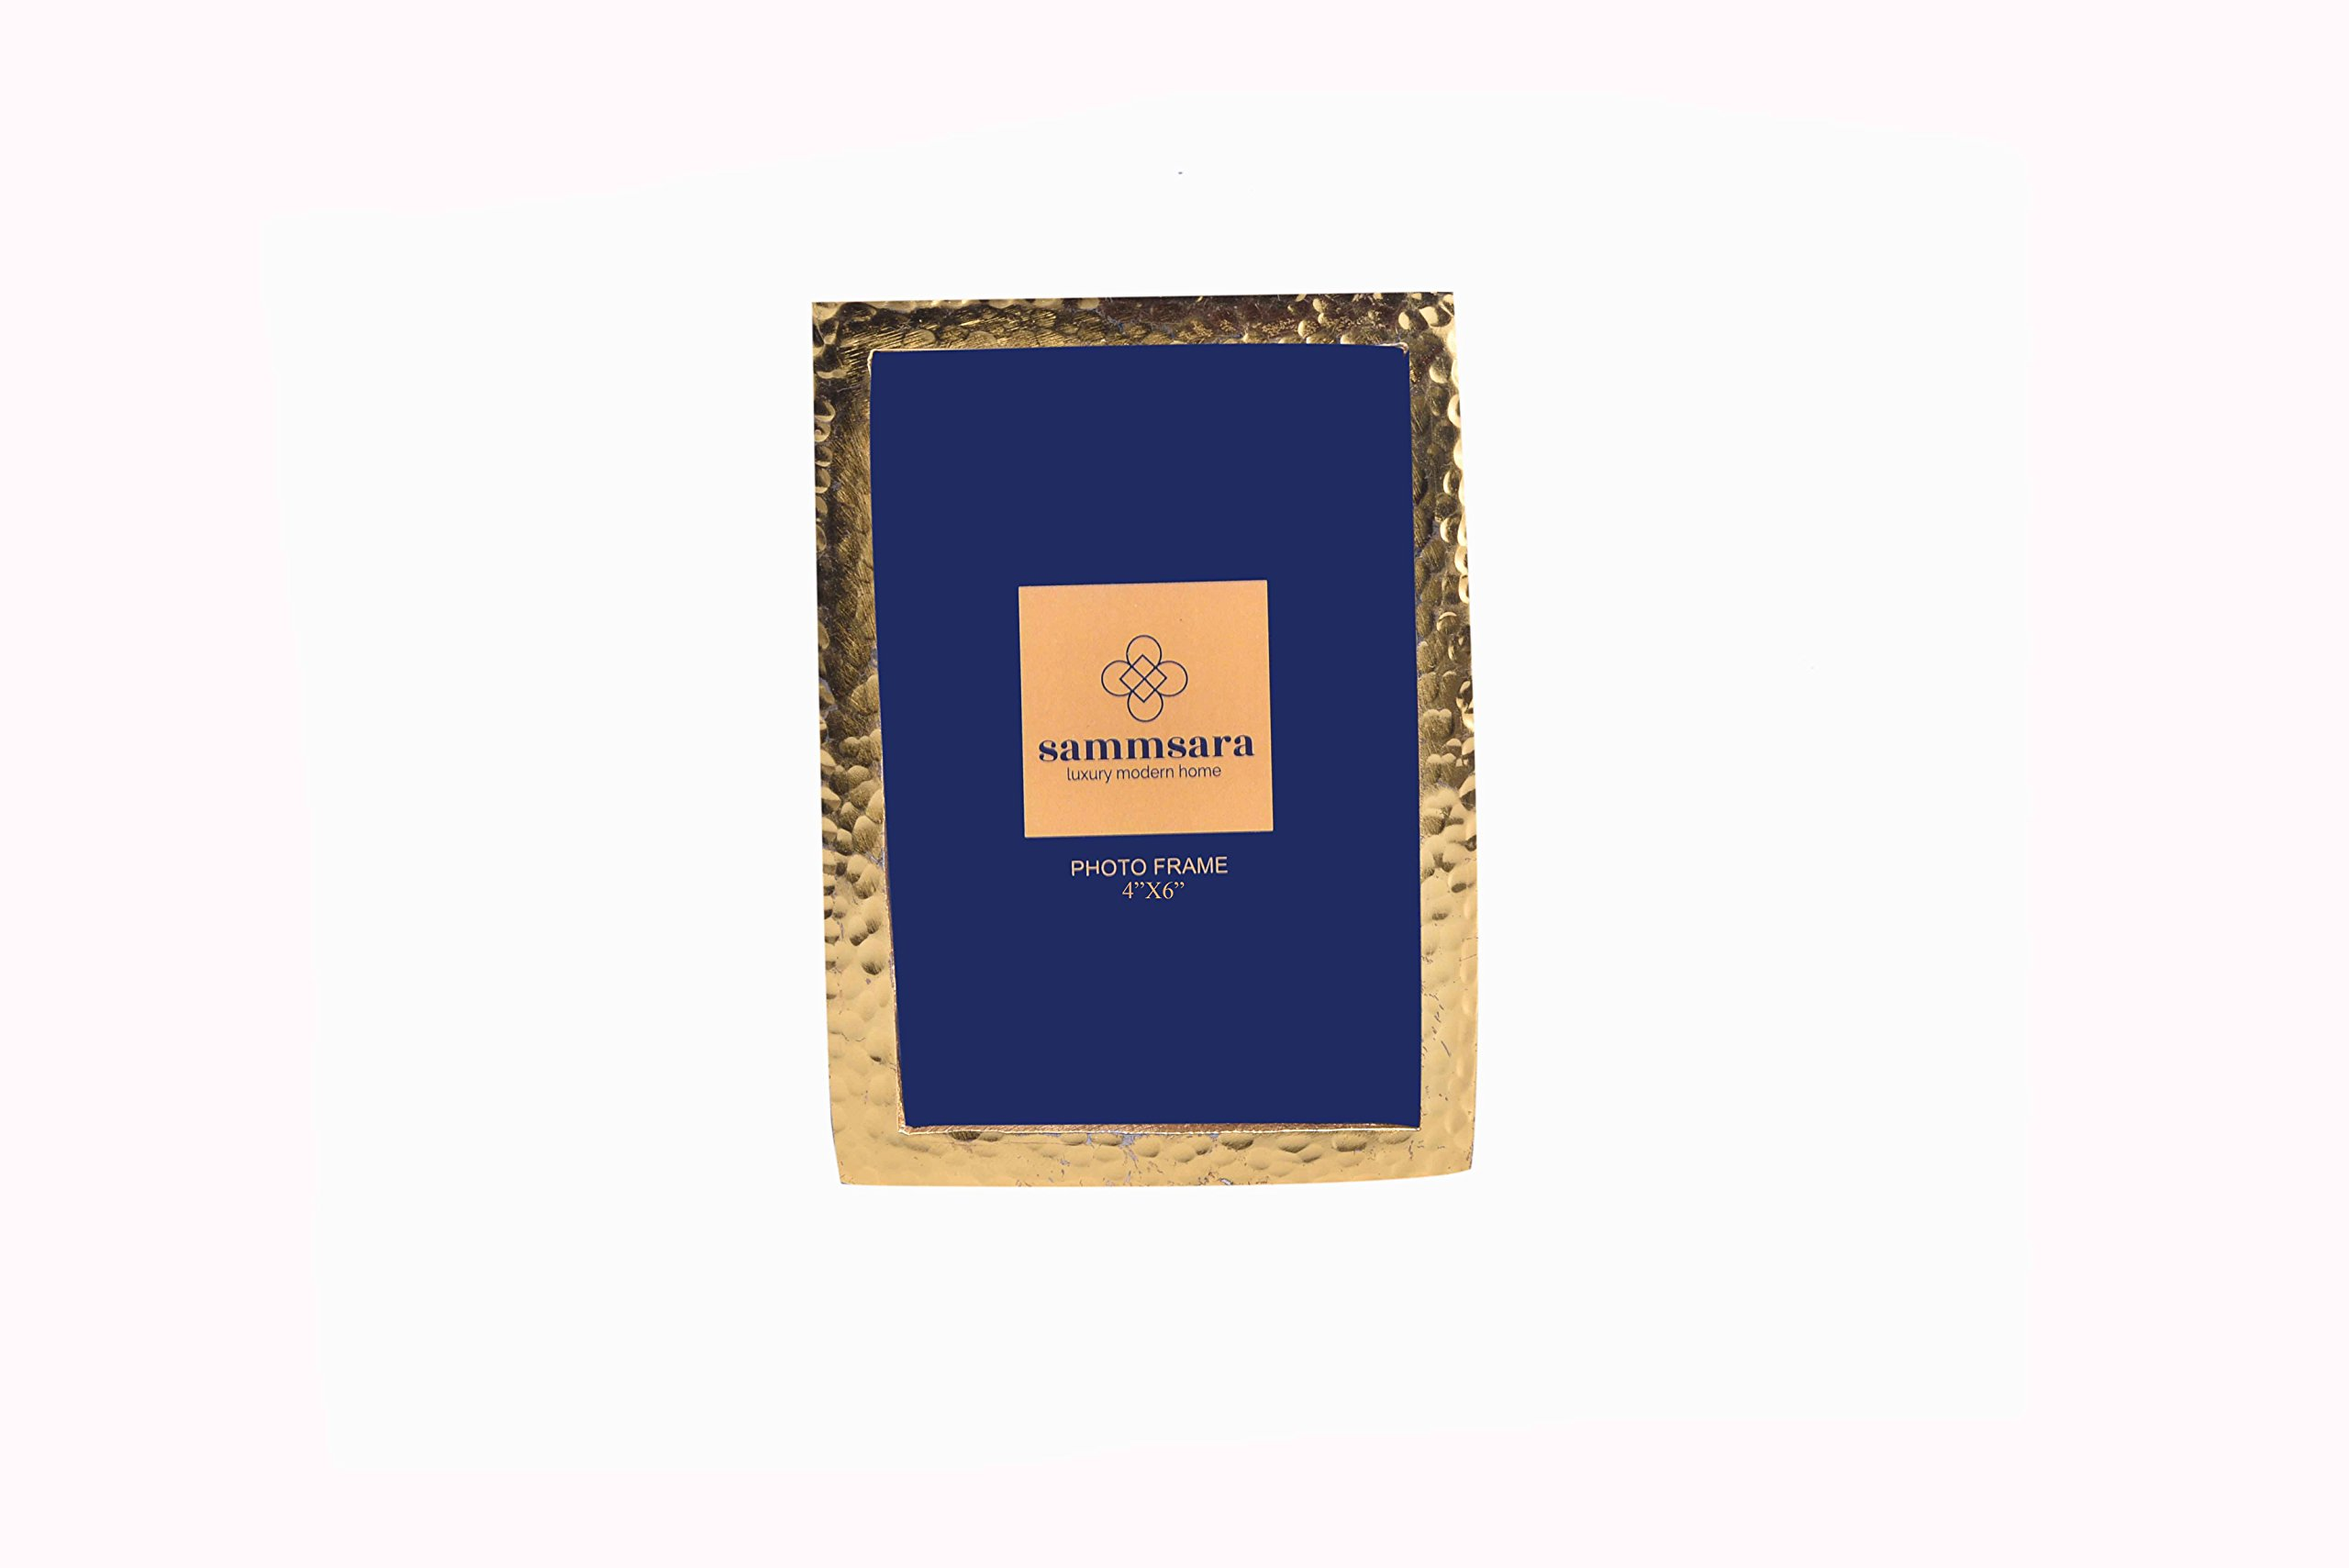 "Gabriel Gold Hammered Photo Frame Small 4X6"" Photosize with Free Beautiful Gift Box by Sammsara (Image #2)"